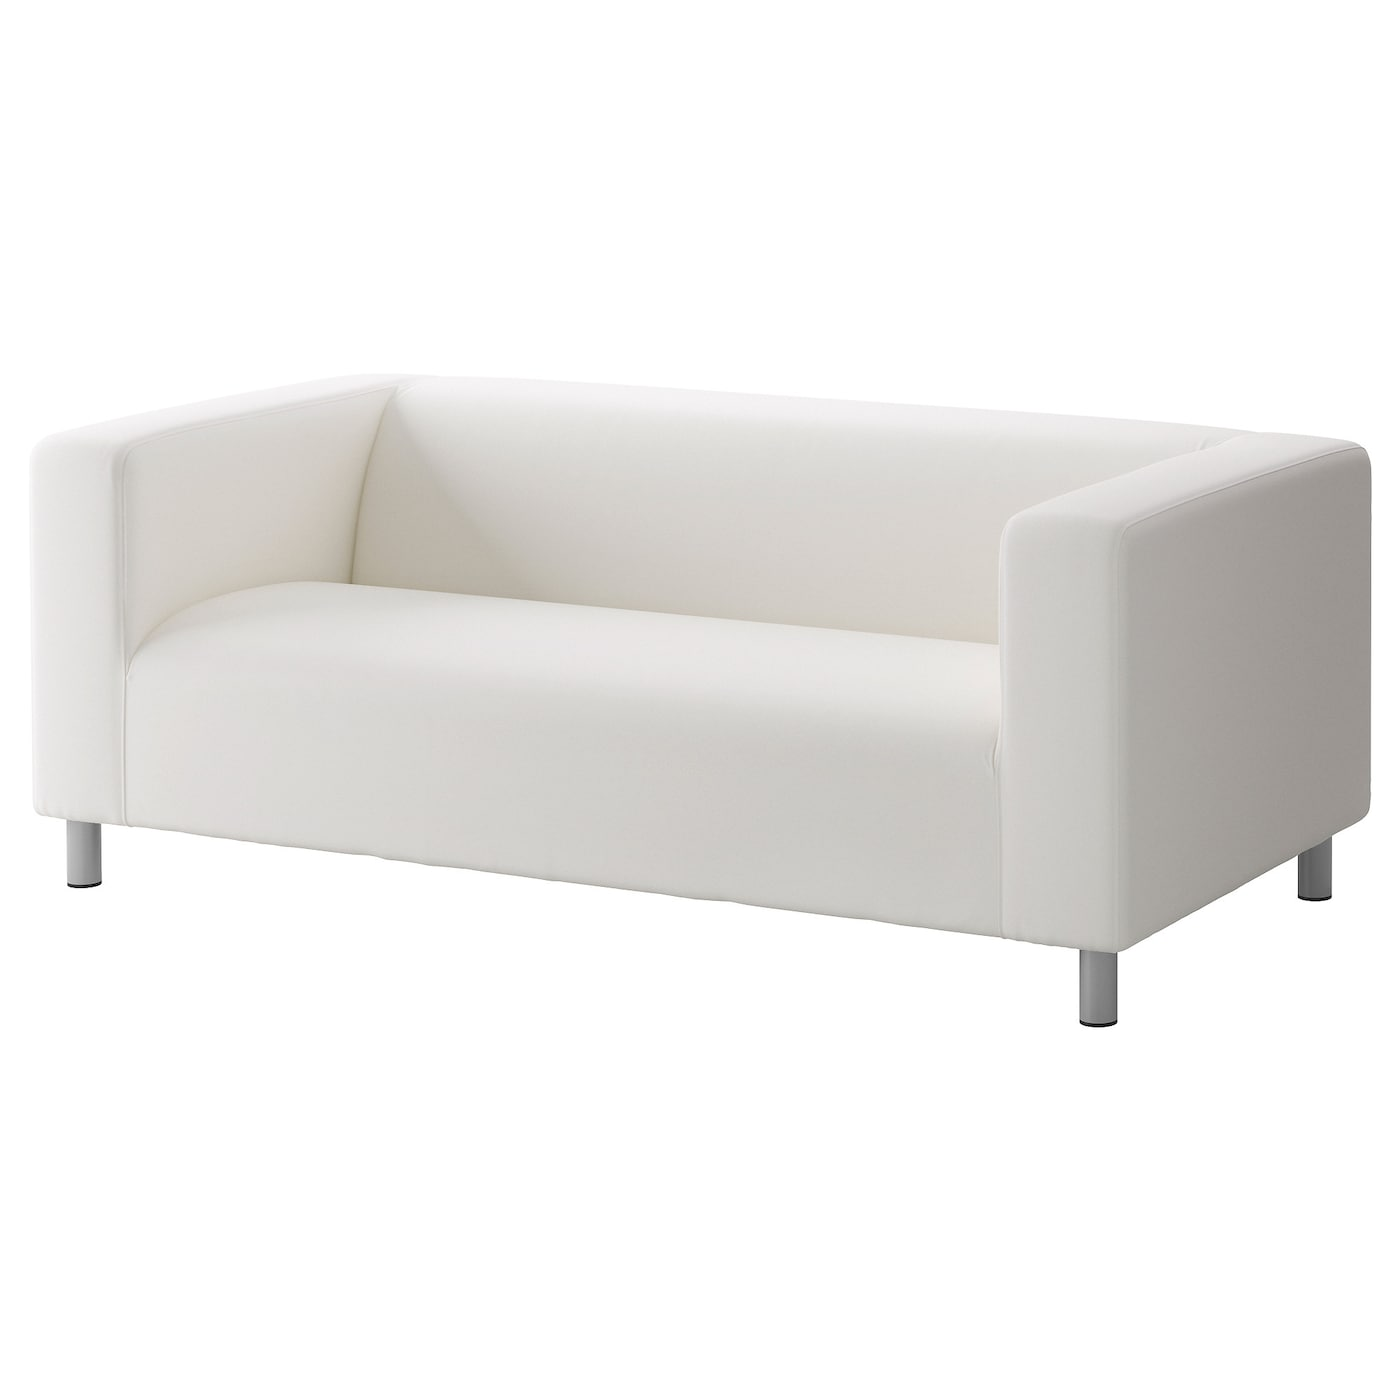 Perfect IKEA KLIPPAN Two Seat Sofa